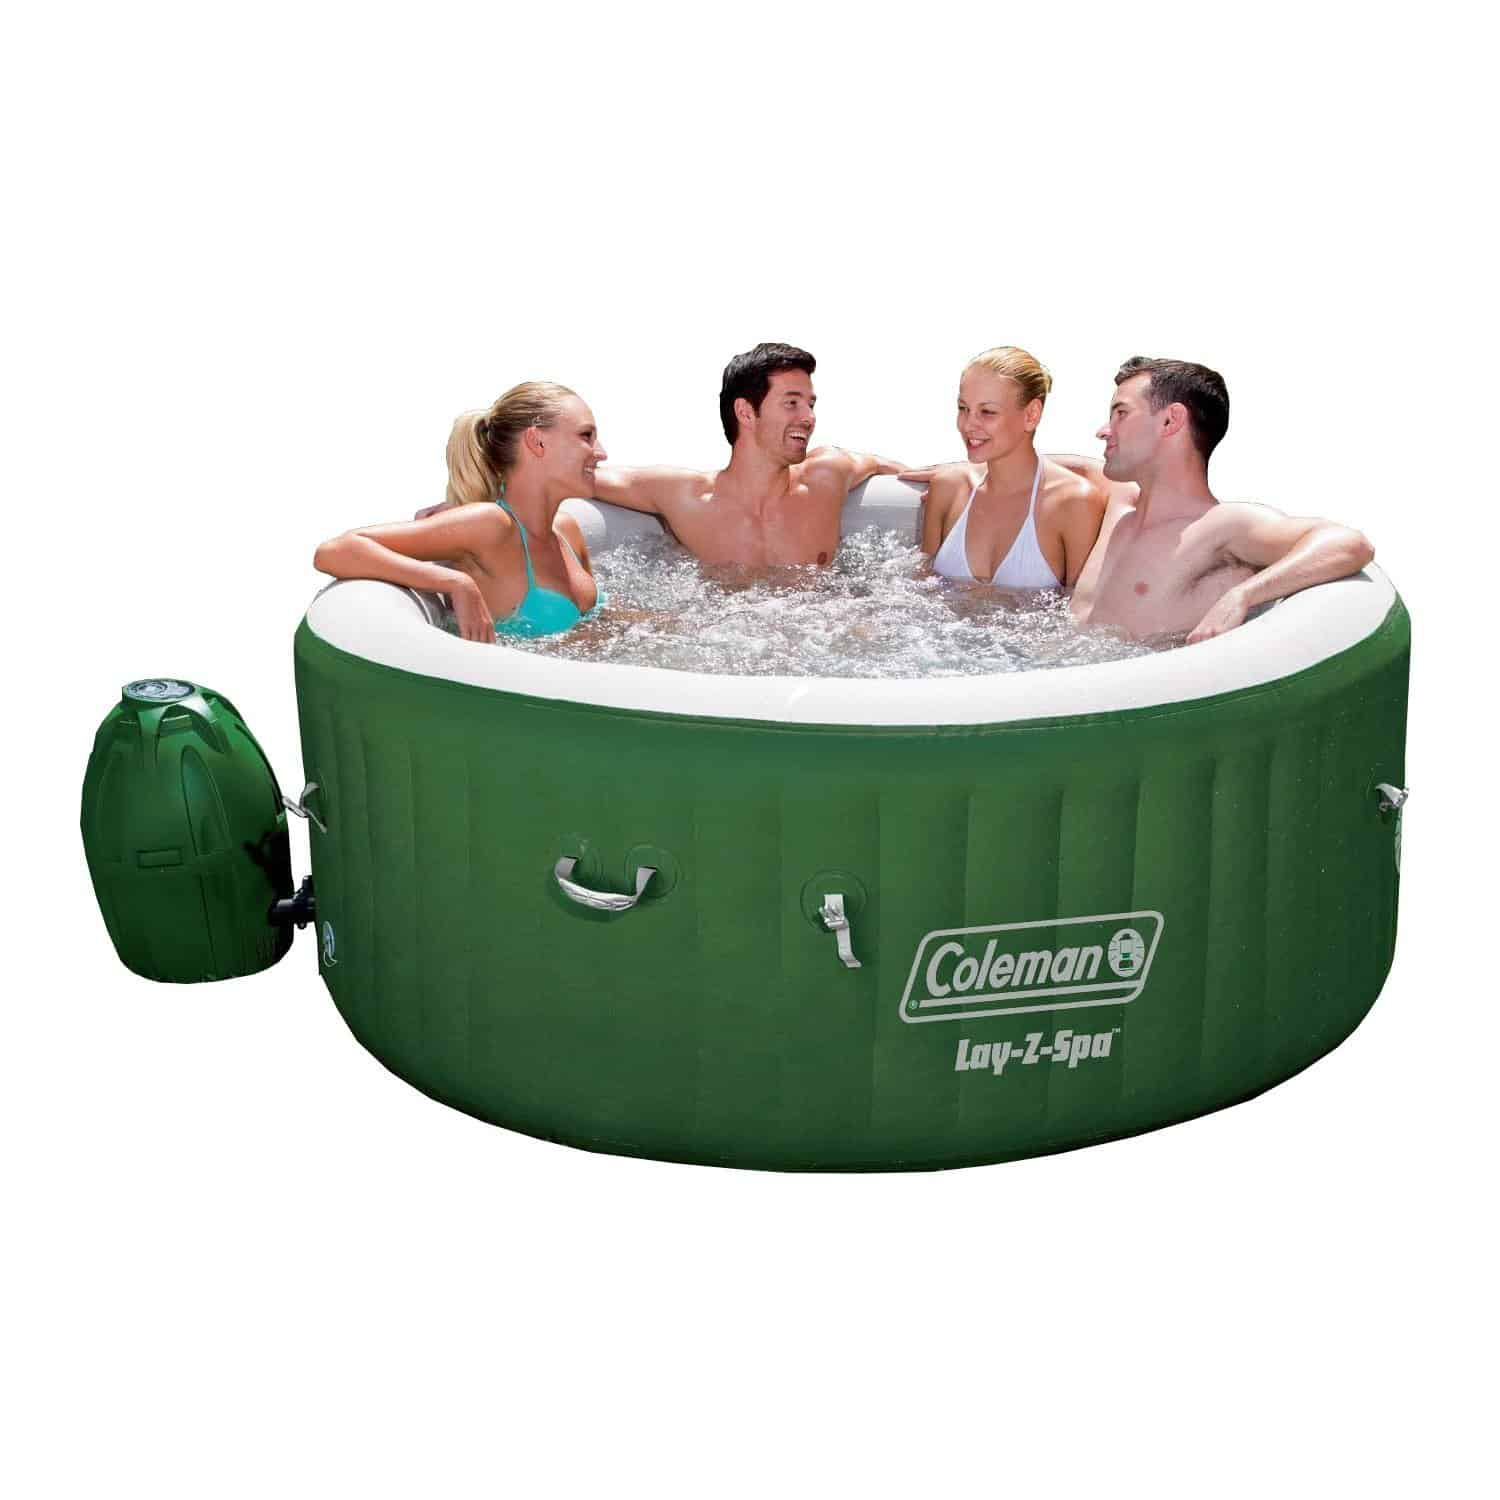 dp ca portable mspa super amazon b patio spa outdoor lawn tub garden hot tuscany